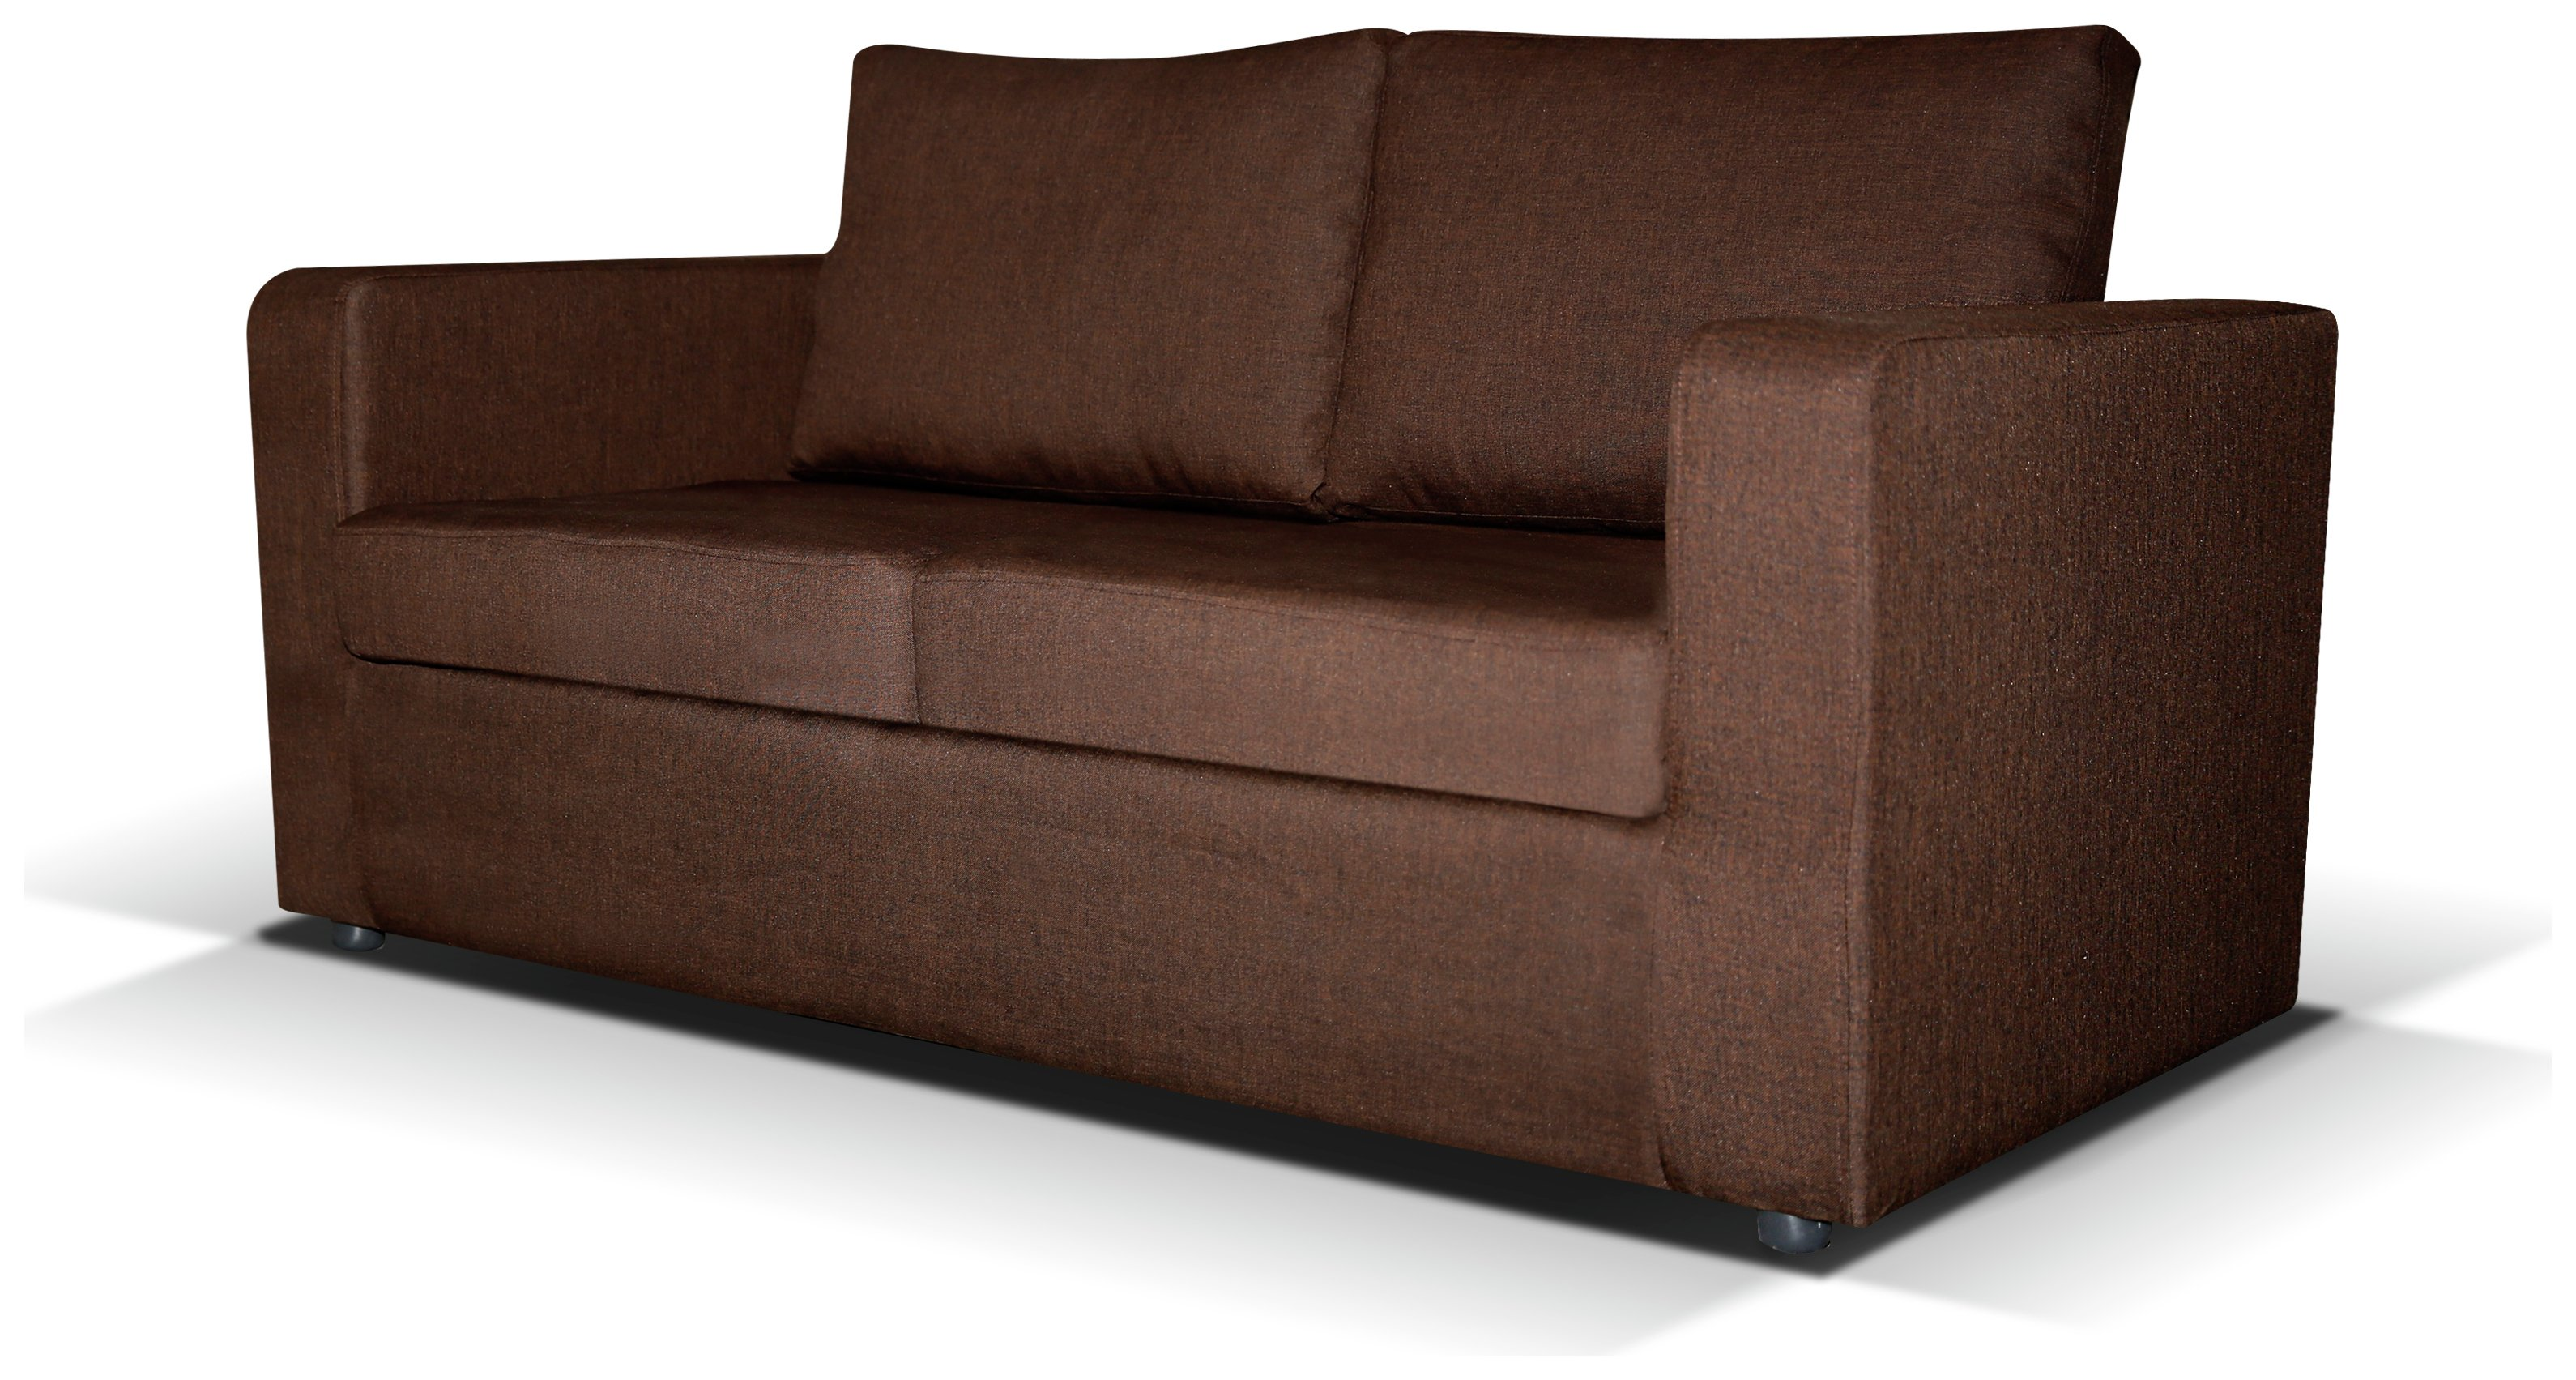 Image of Max - 2 Seater Fabric - Sofa Bed - Chocolate